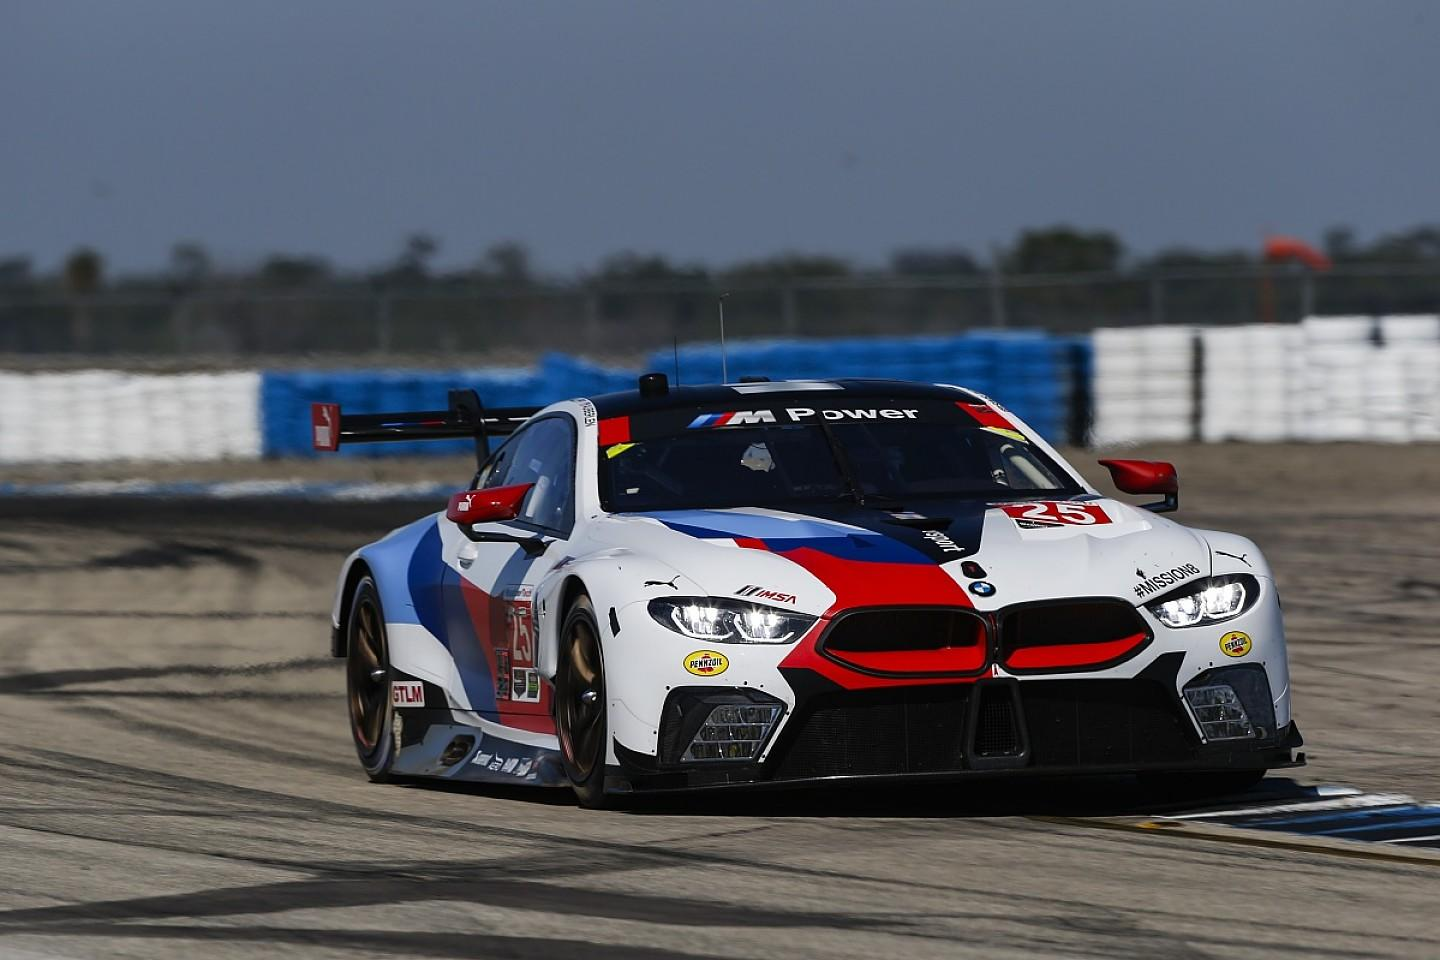 Bmw S New M8 Heavier For Wec Than When It Took Sebring Podium